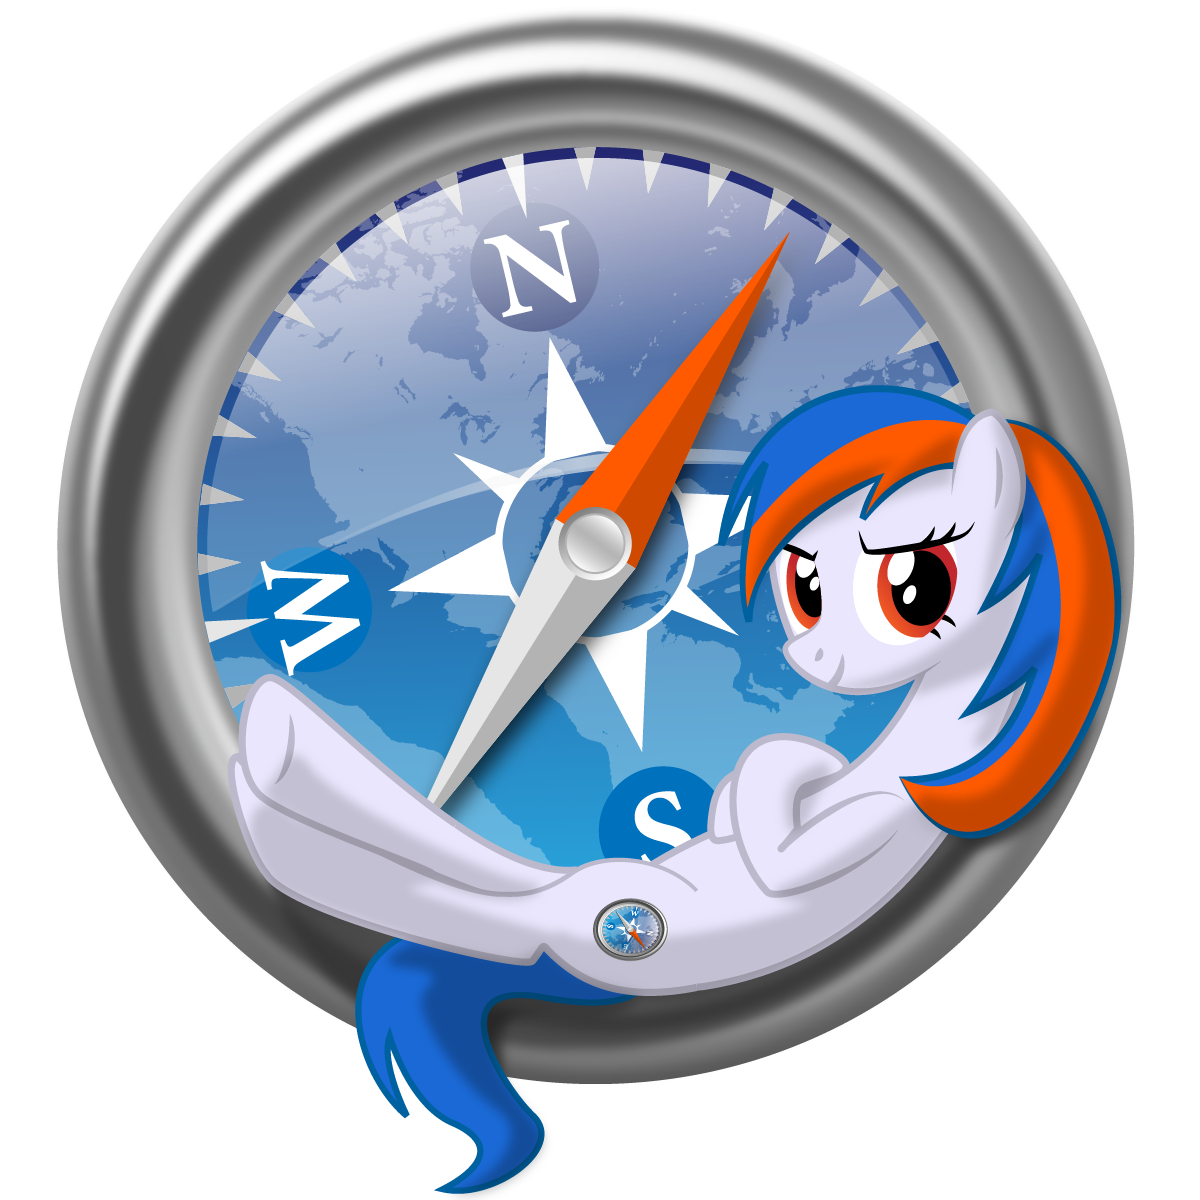 Image my little pony. Clocks clipart time travel